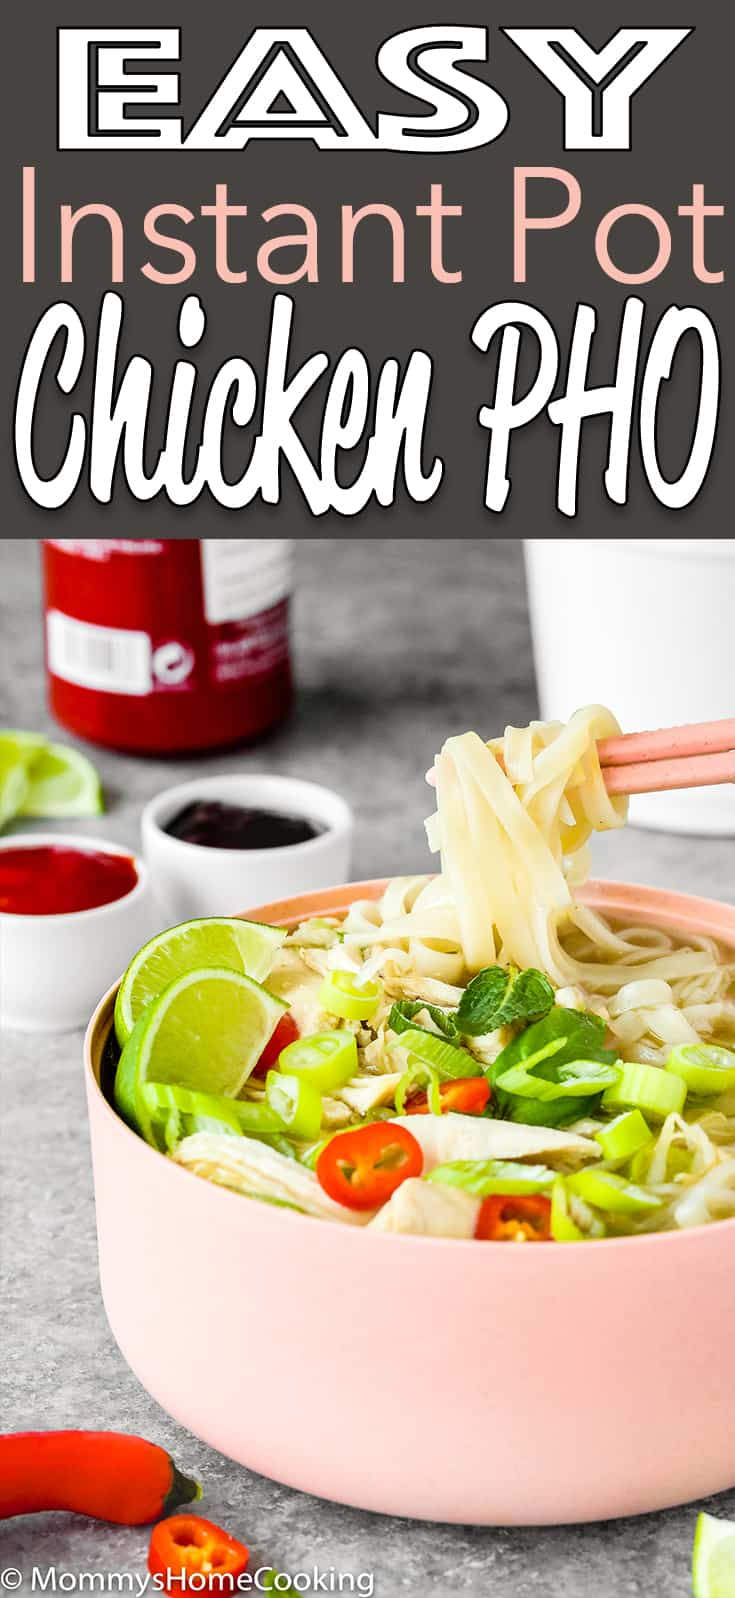 This Easy Instant Pot Chicken Pho is light, fragrant and totally delicious! Made from scratch and in a fraction of the time, this Vietnamese soup recipe takes 30 minutes to make thanks to the pressure cooker's magic. #recipe #easy #instantpot #pho #chicken #soup